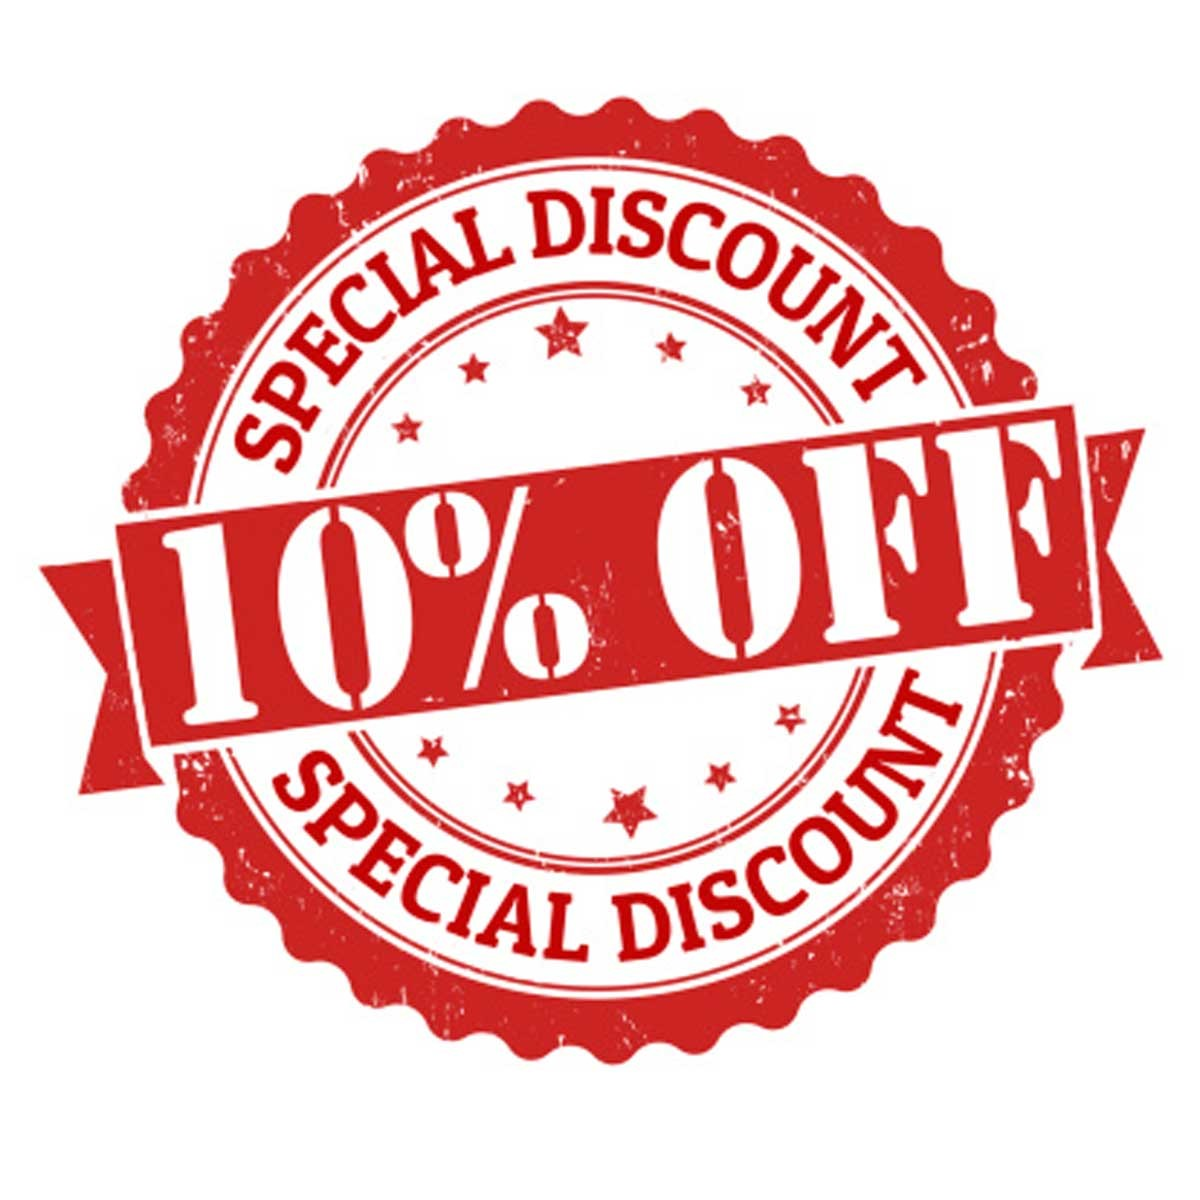 Receive 10% Off from canfitpro!